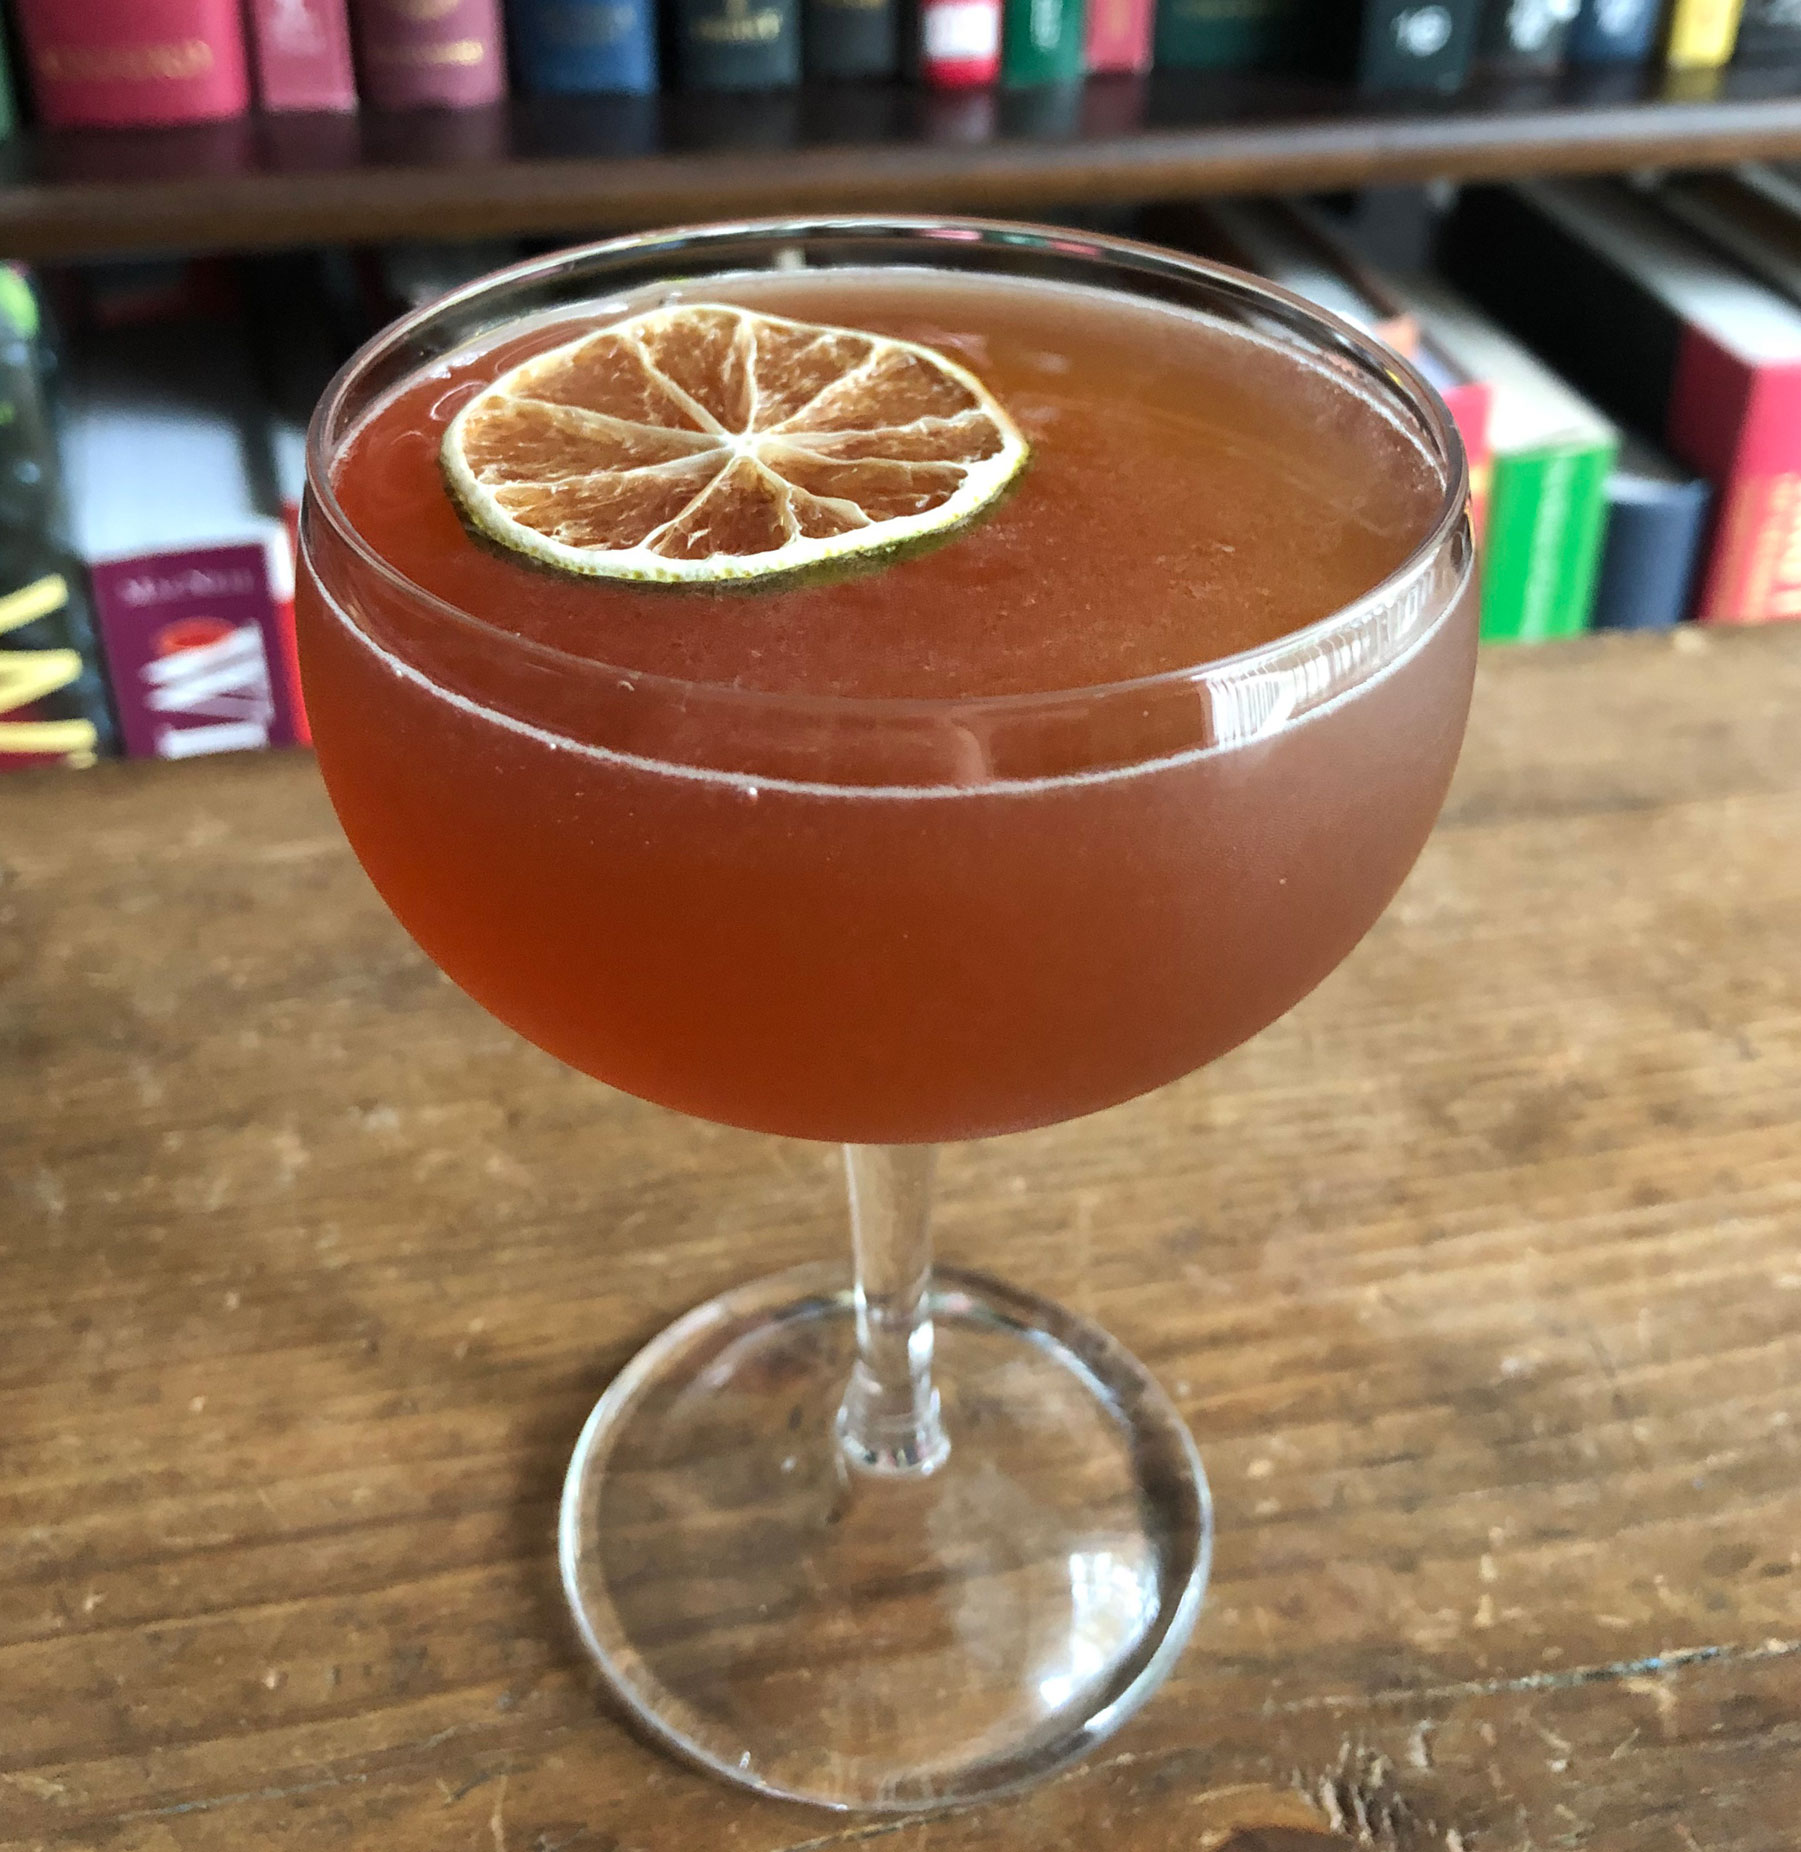 An example of the Millionaire No. 1, the mixed drink (cocktail), by Savoy Cocktail Book, featuring Hayman's Sloe Gin, Smith & Cross Traditional Jamaica Rum, Blume Marillen Apricot Eau-de-Vie, lime juice, grenadine, and simple syrup; photo by Lee Edwards